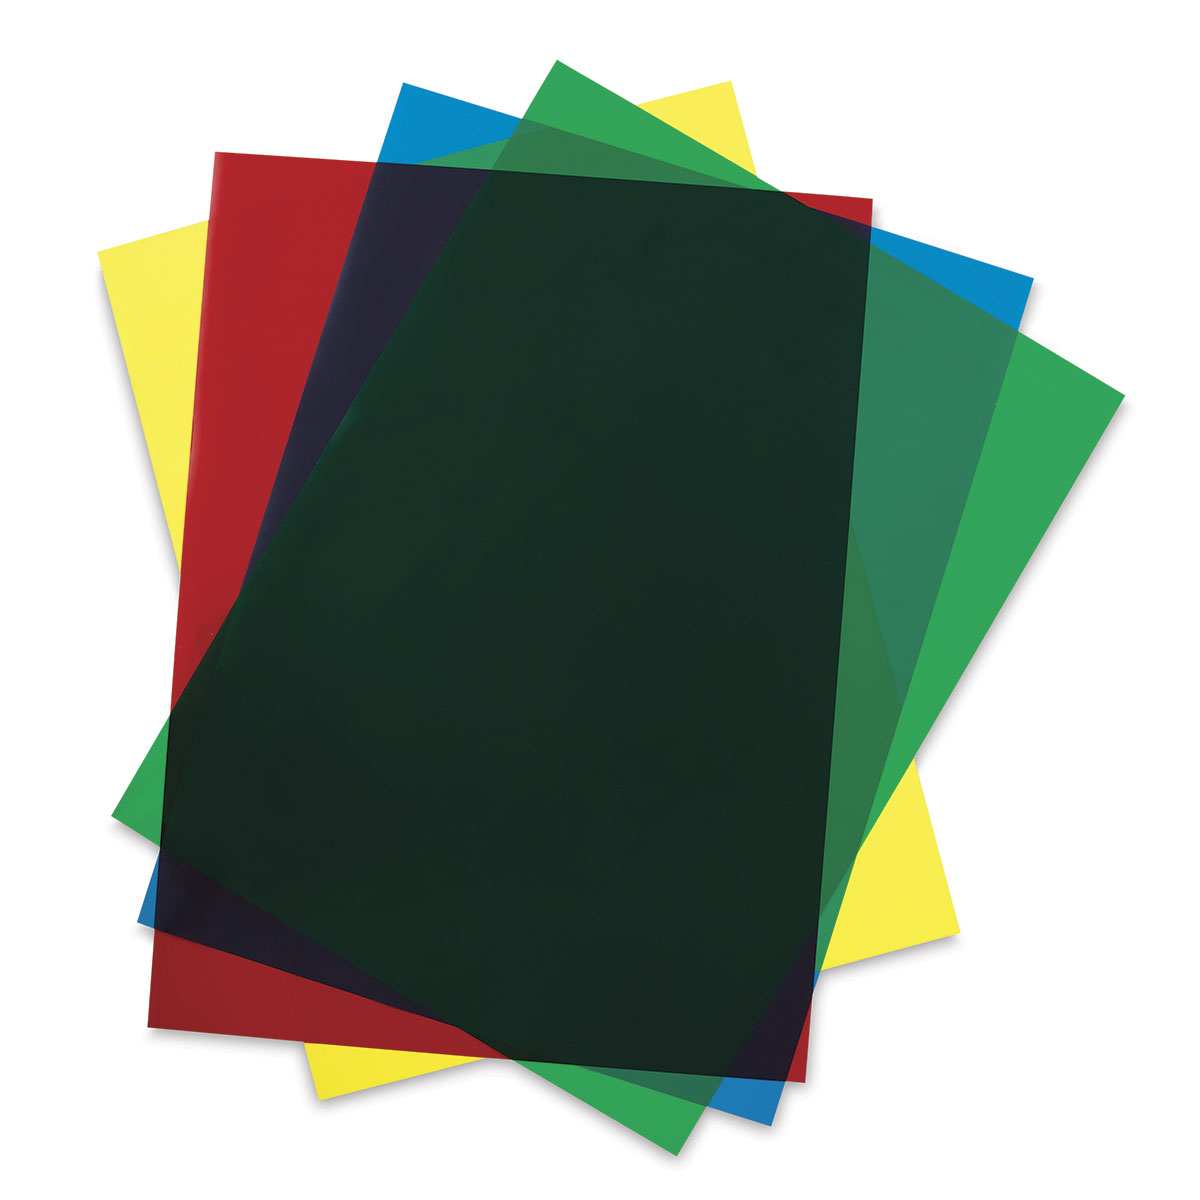 x 12 in .003 thick pad of 25 New Grafix Clear-Lay Acetate Alternative 9 in